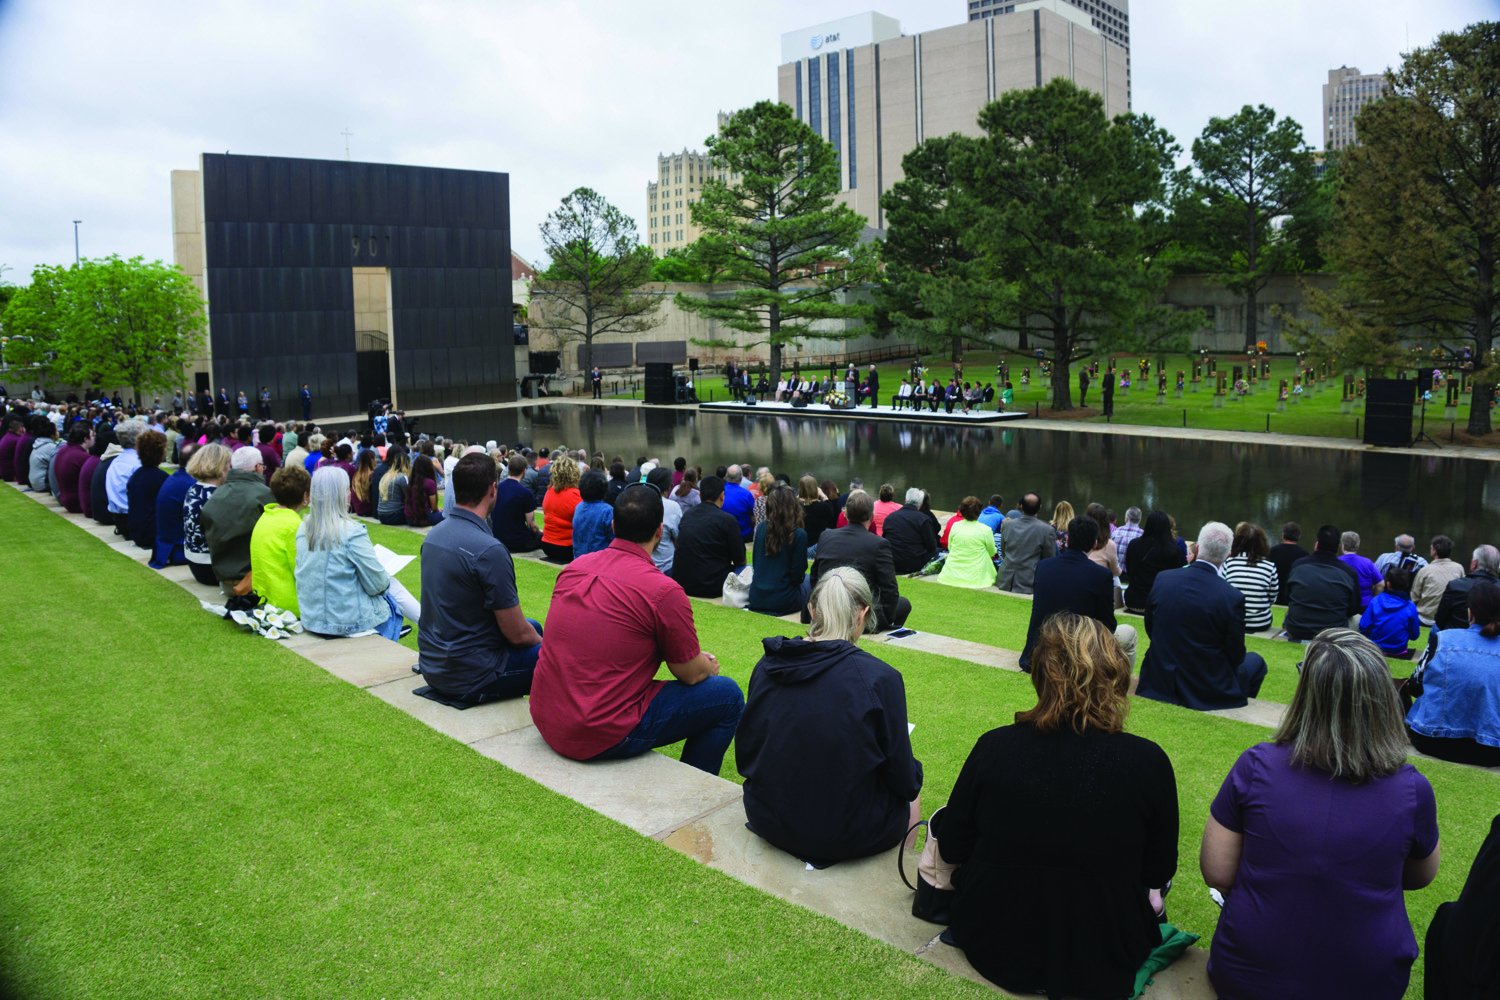 A day of remembrance: Anniversary of the Oklahoma City bombing